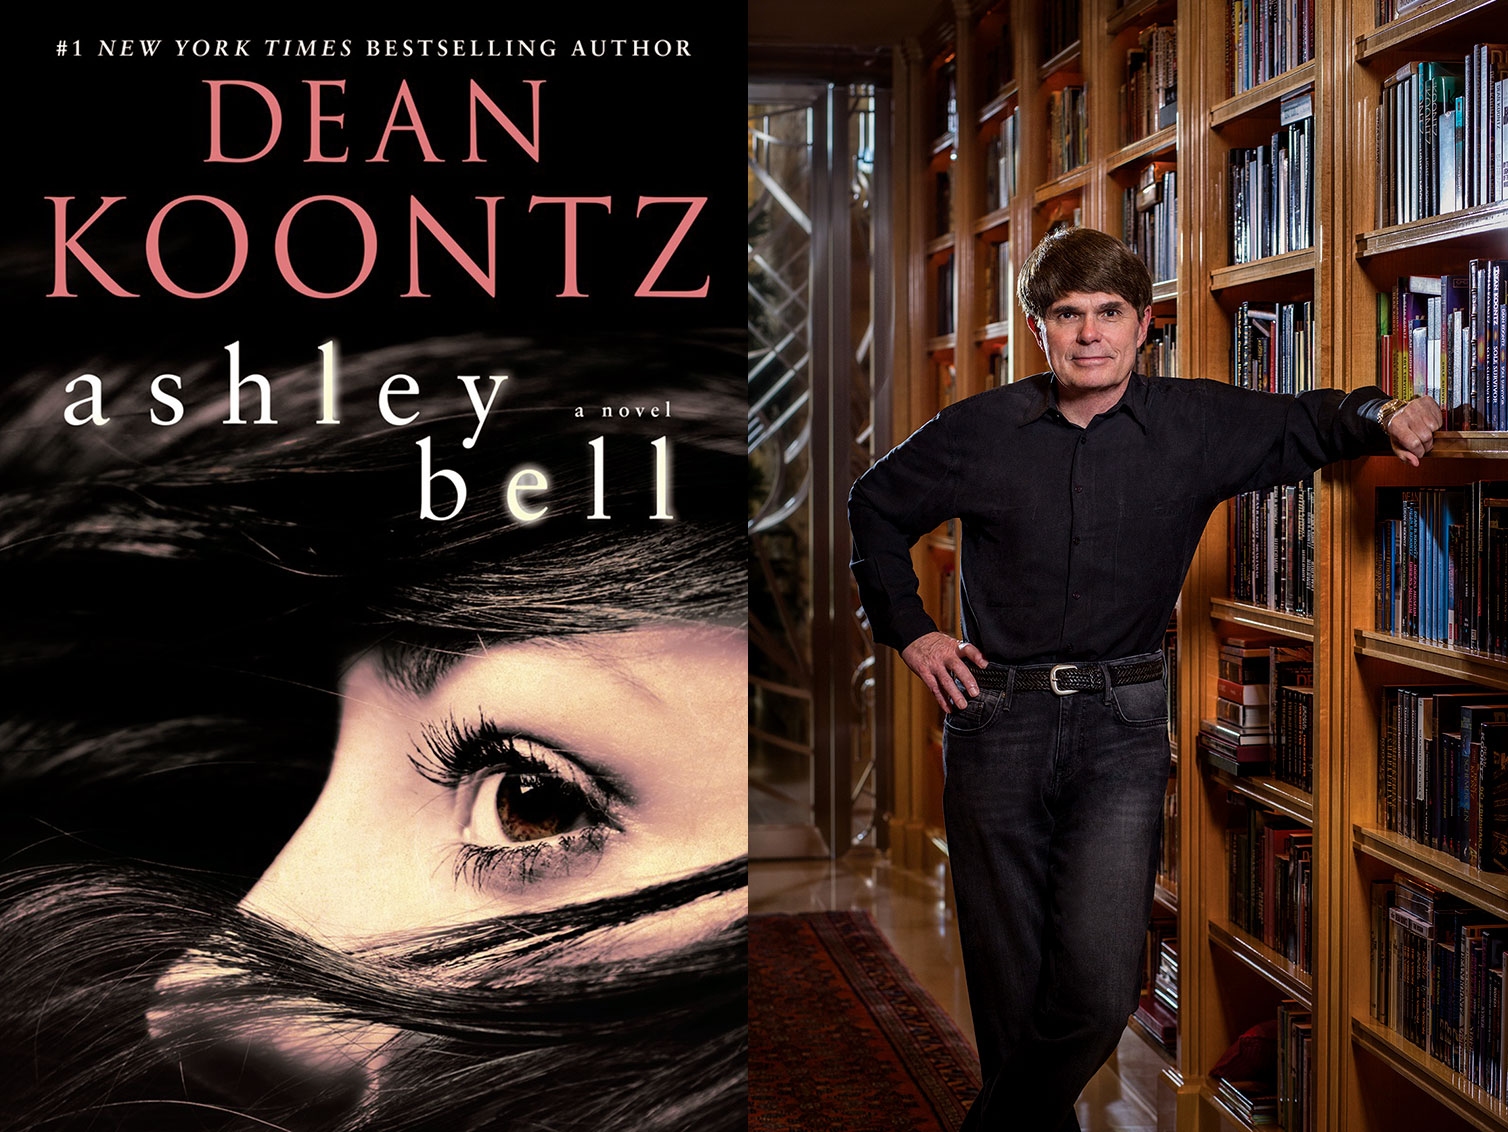 Ashley-Bell_Dean-Koontz_Joan-Allen